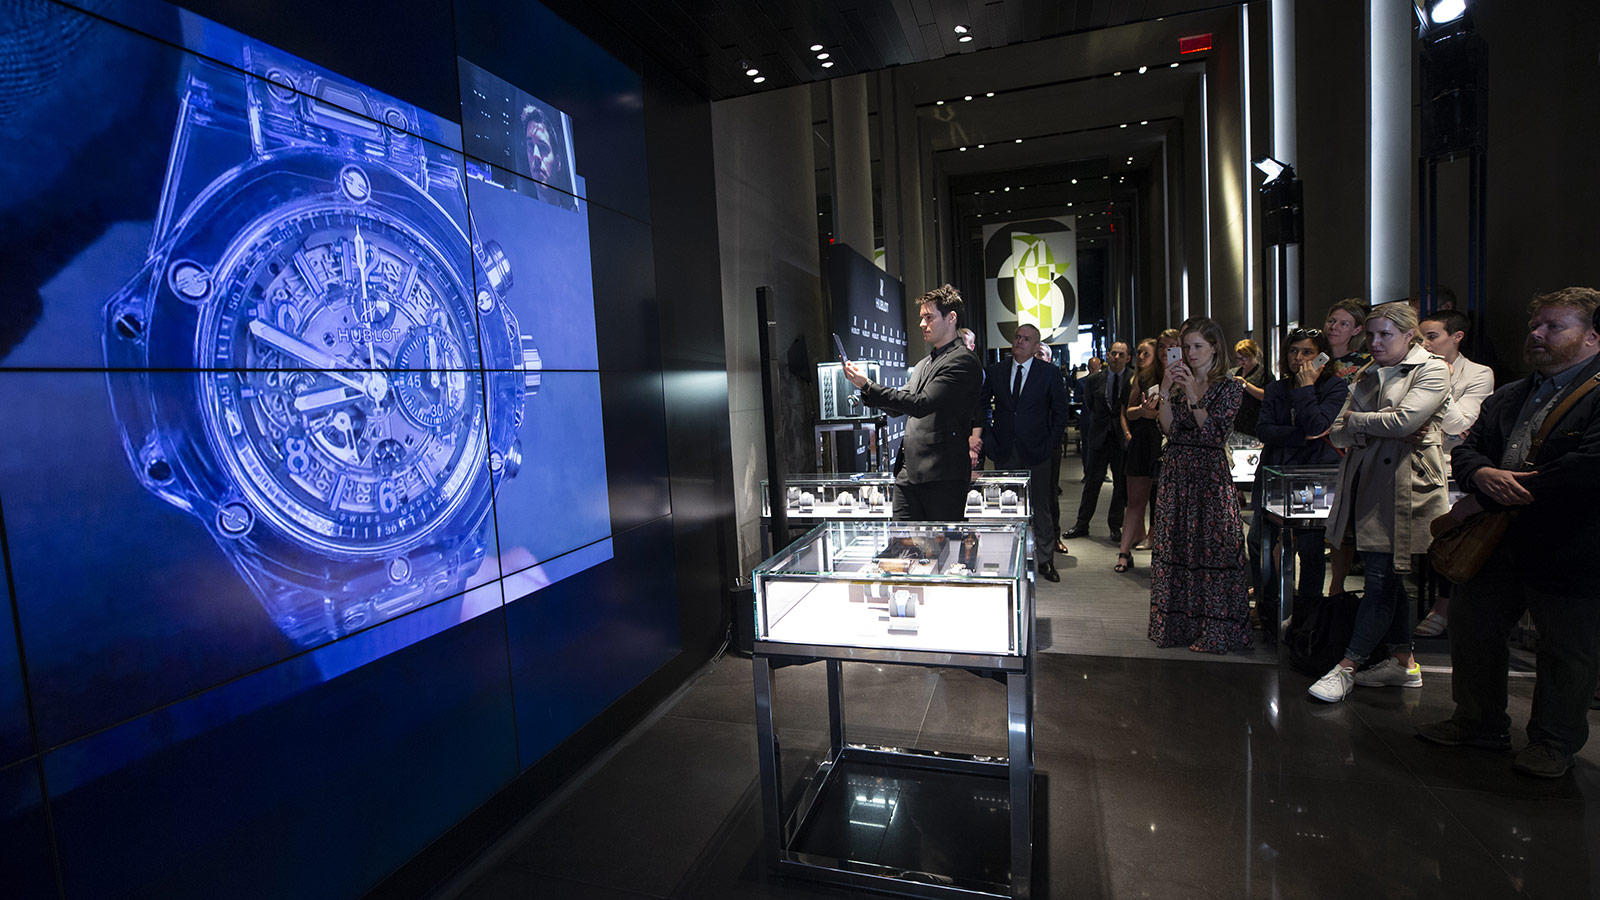 digital boutique hublot 2018 020 1 - Hublot busca estar a la vanguardia con una boutique digital